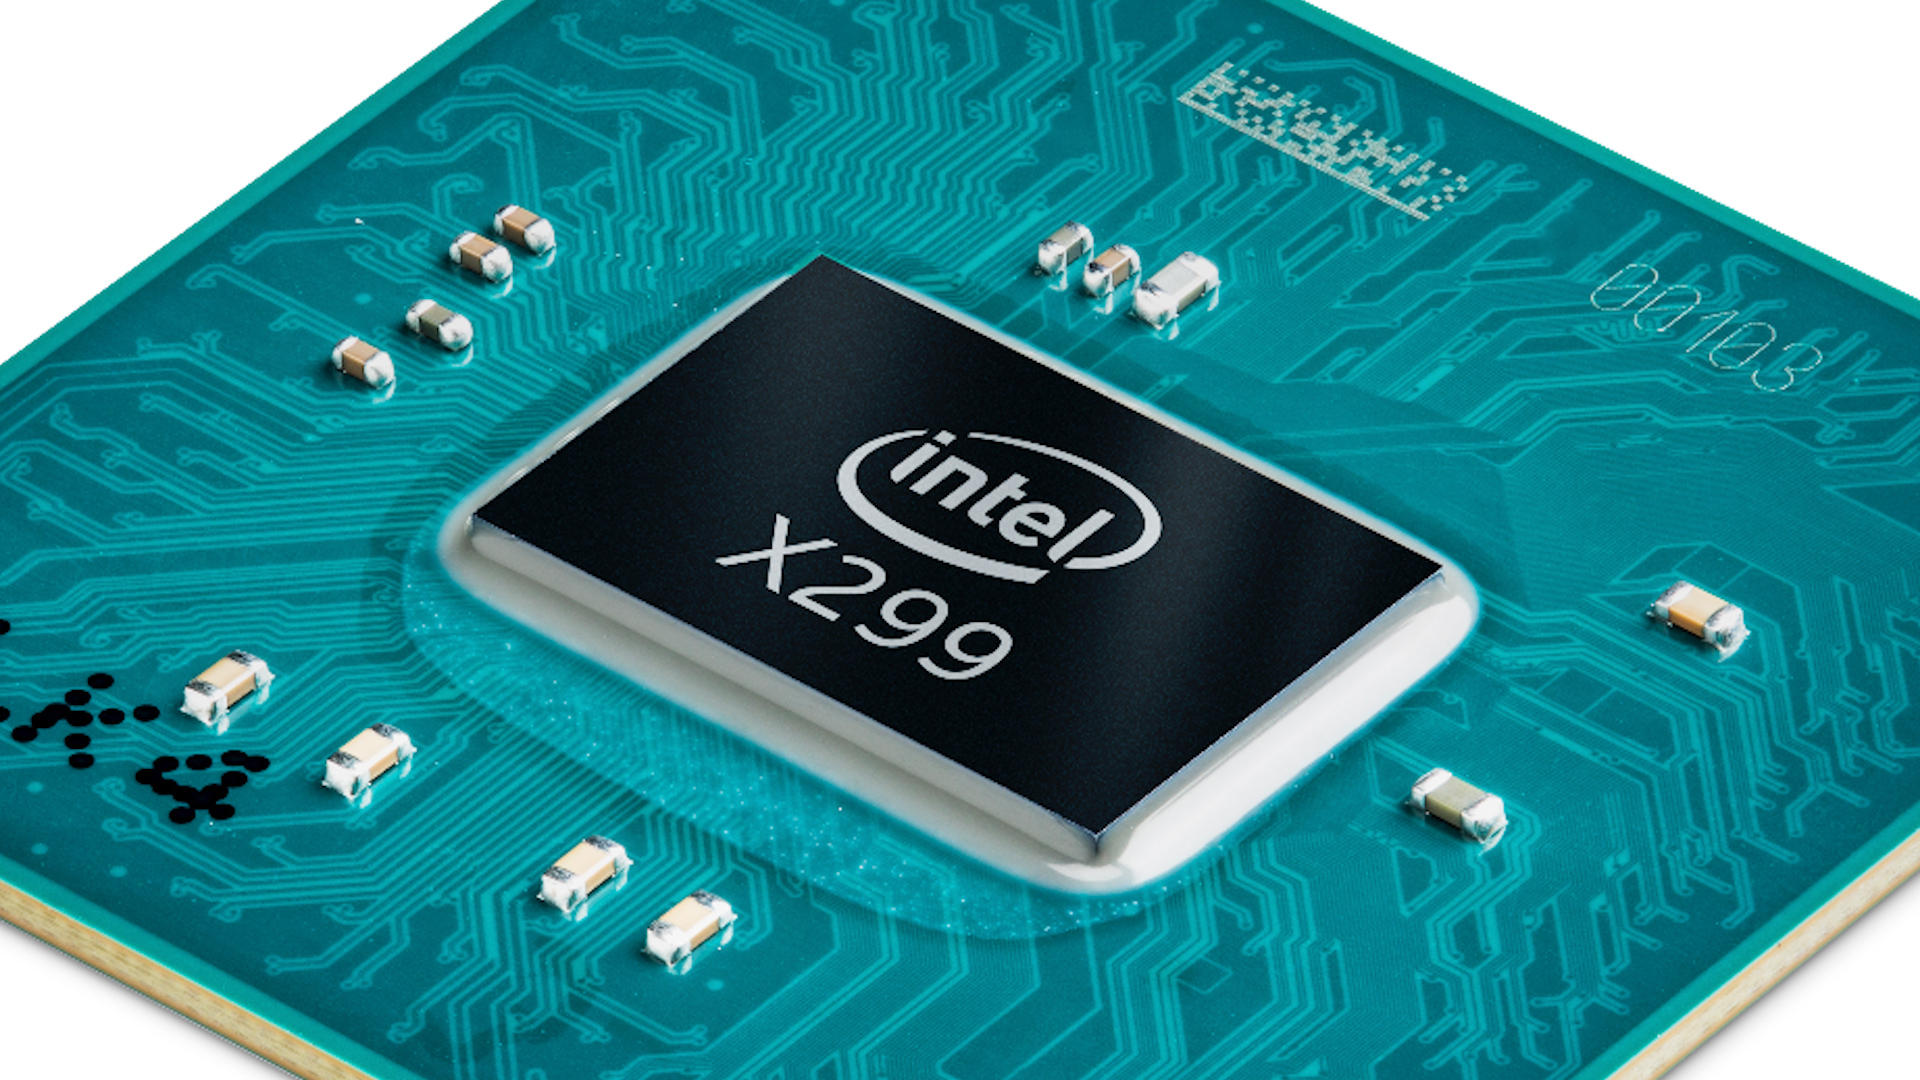 Video: Need an extreme processor? Intel X-Series has 18 cores